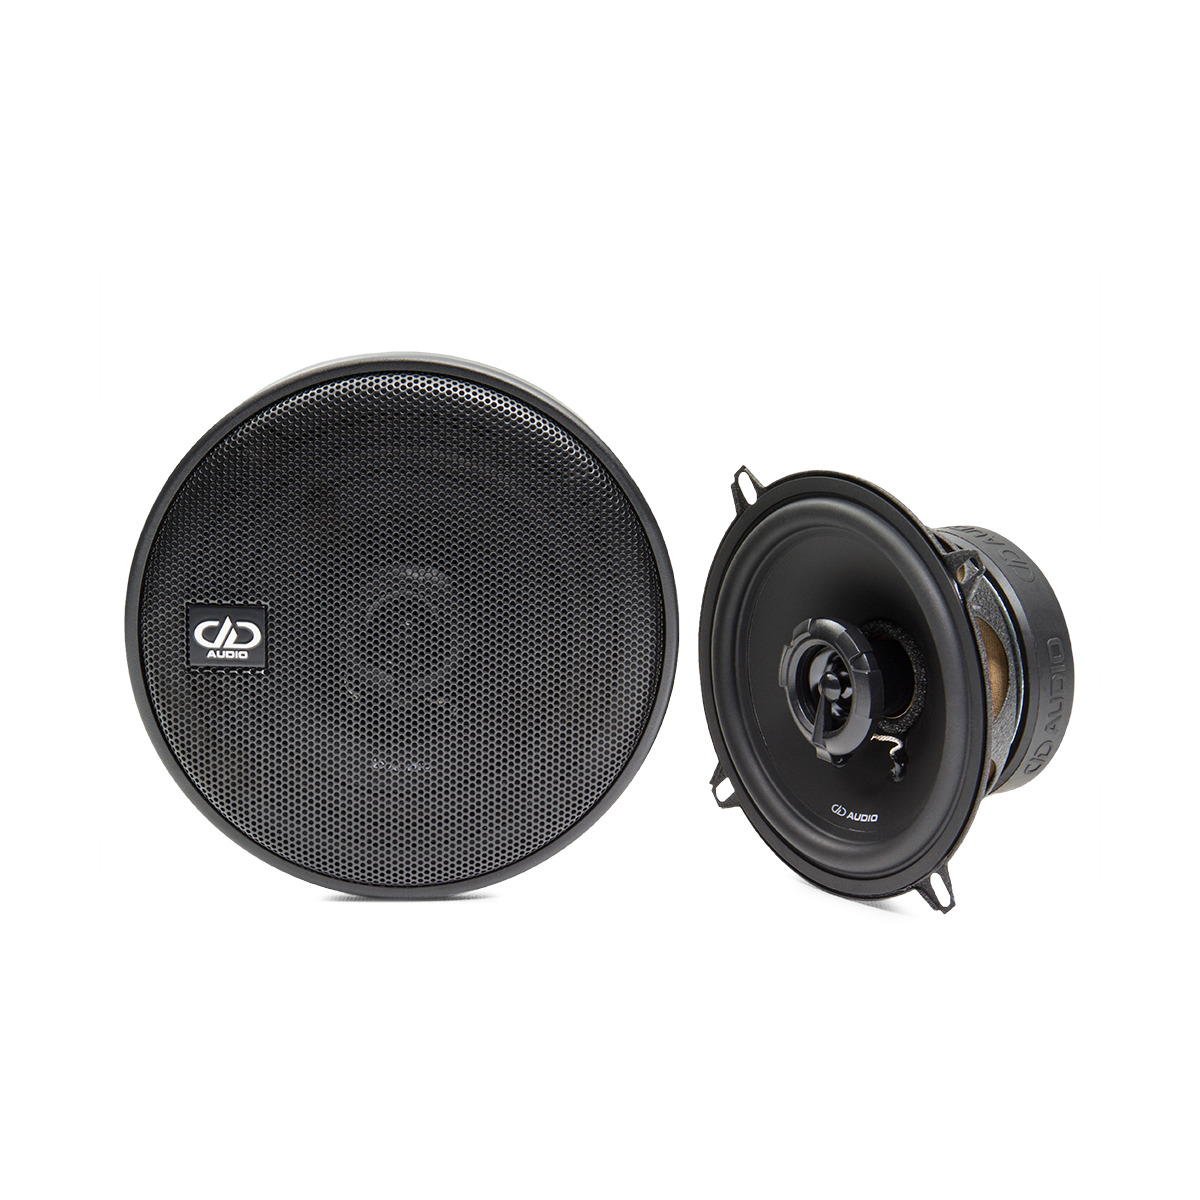 "DD Audio EX5.2 5.25"" 100W (50W RMS) 2 Way Coaxial Car Speakers (pair)"